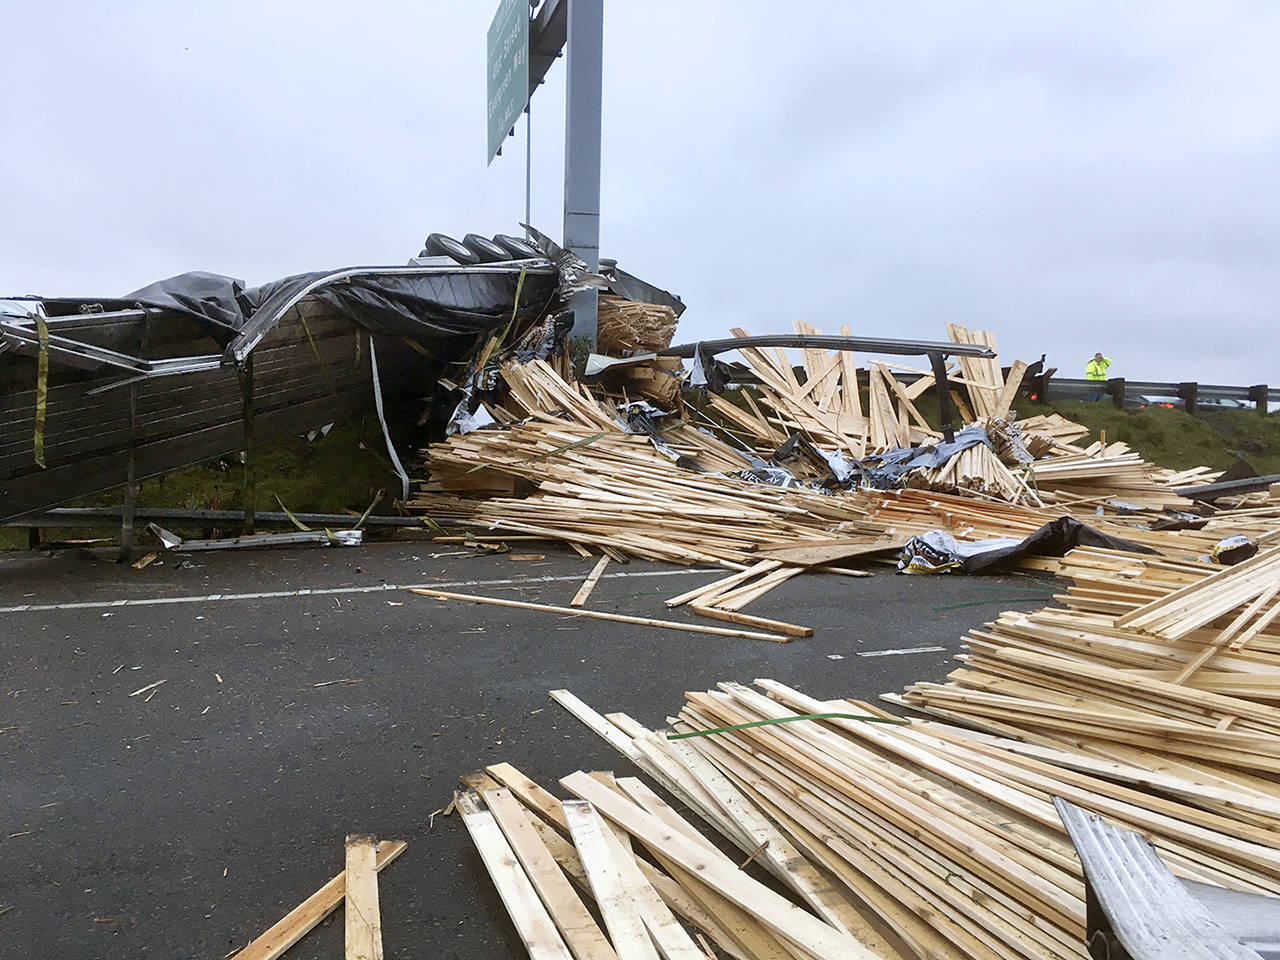 A truck lost a load of lumber after overturning on southbound I-5 near Pacific St. in Everett on Friday morning. (Sue Misao / The Herald)